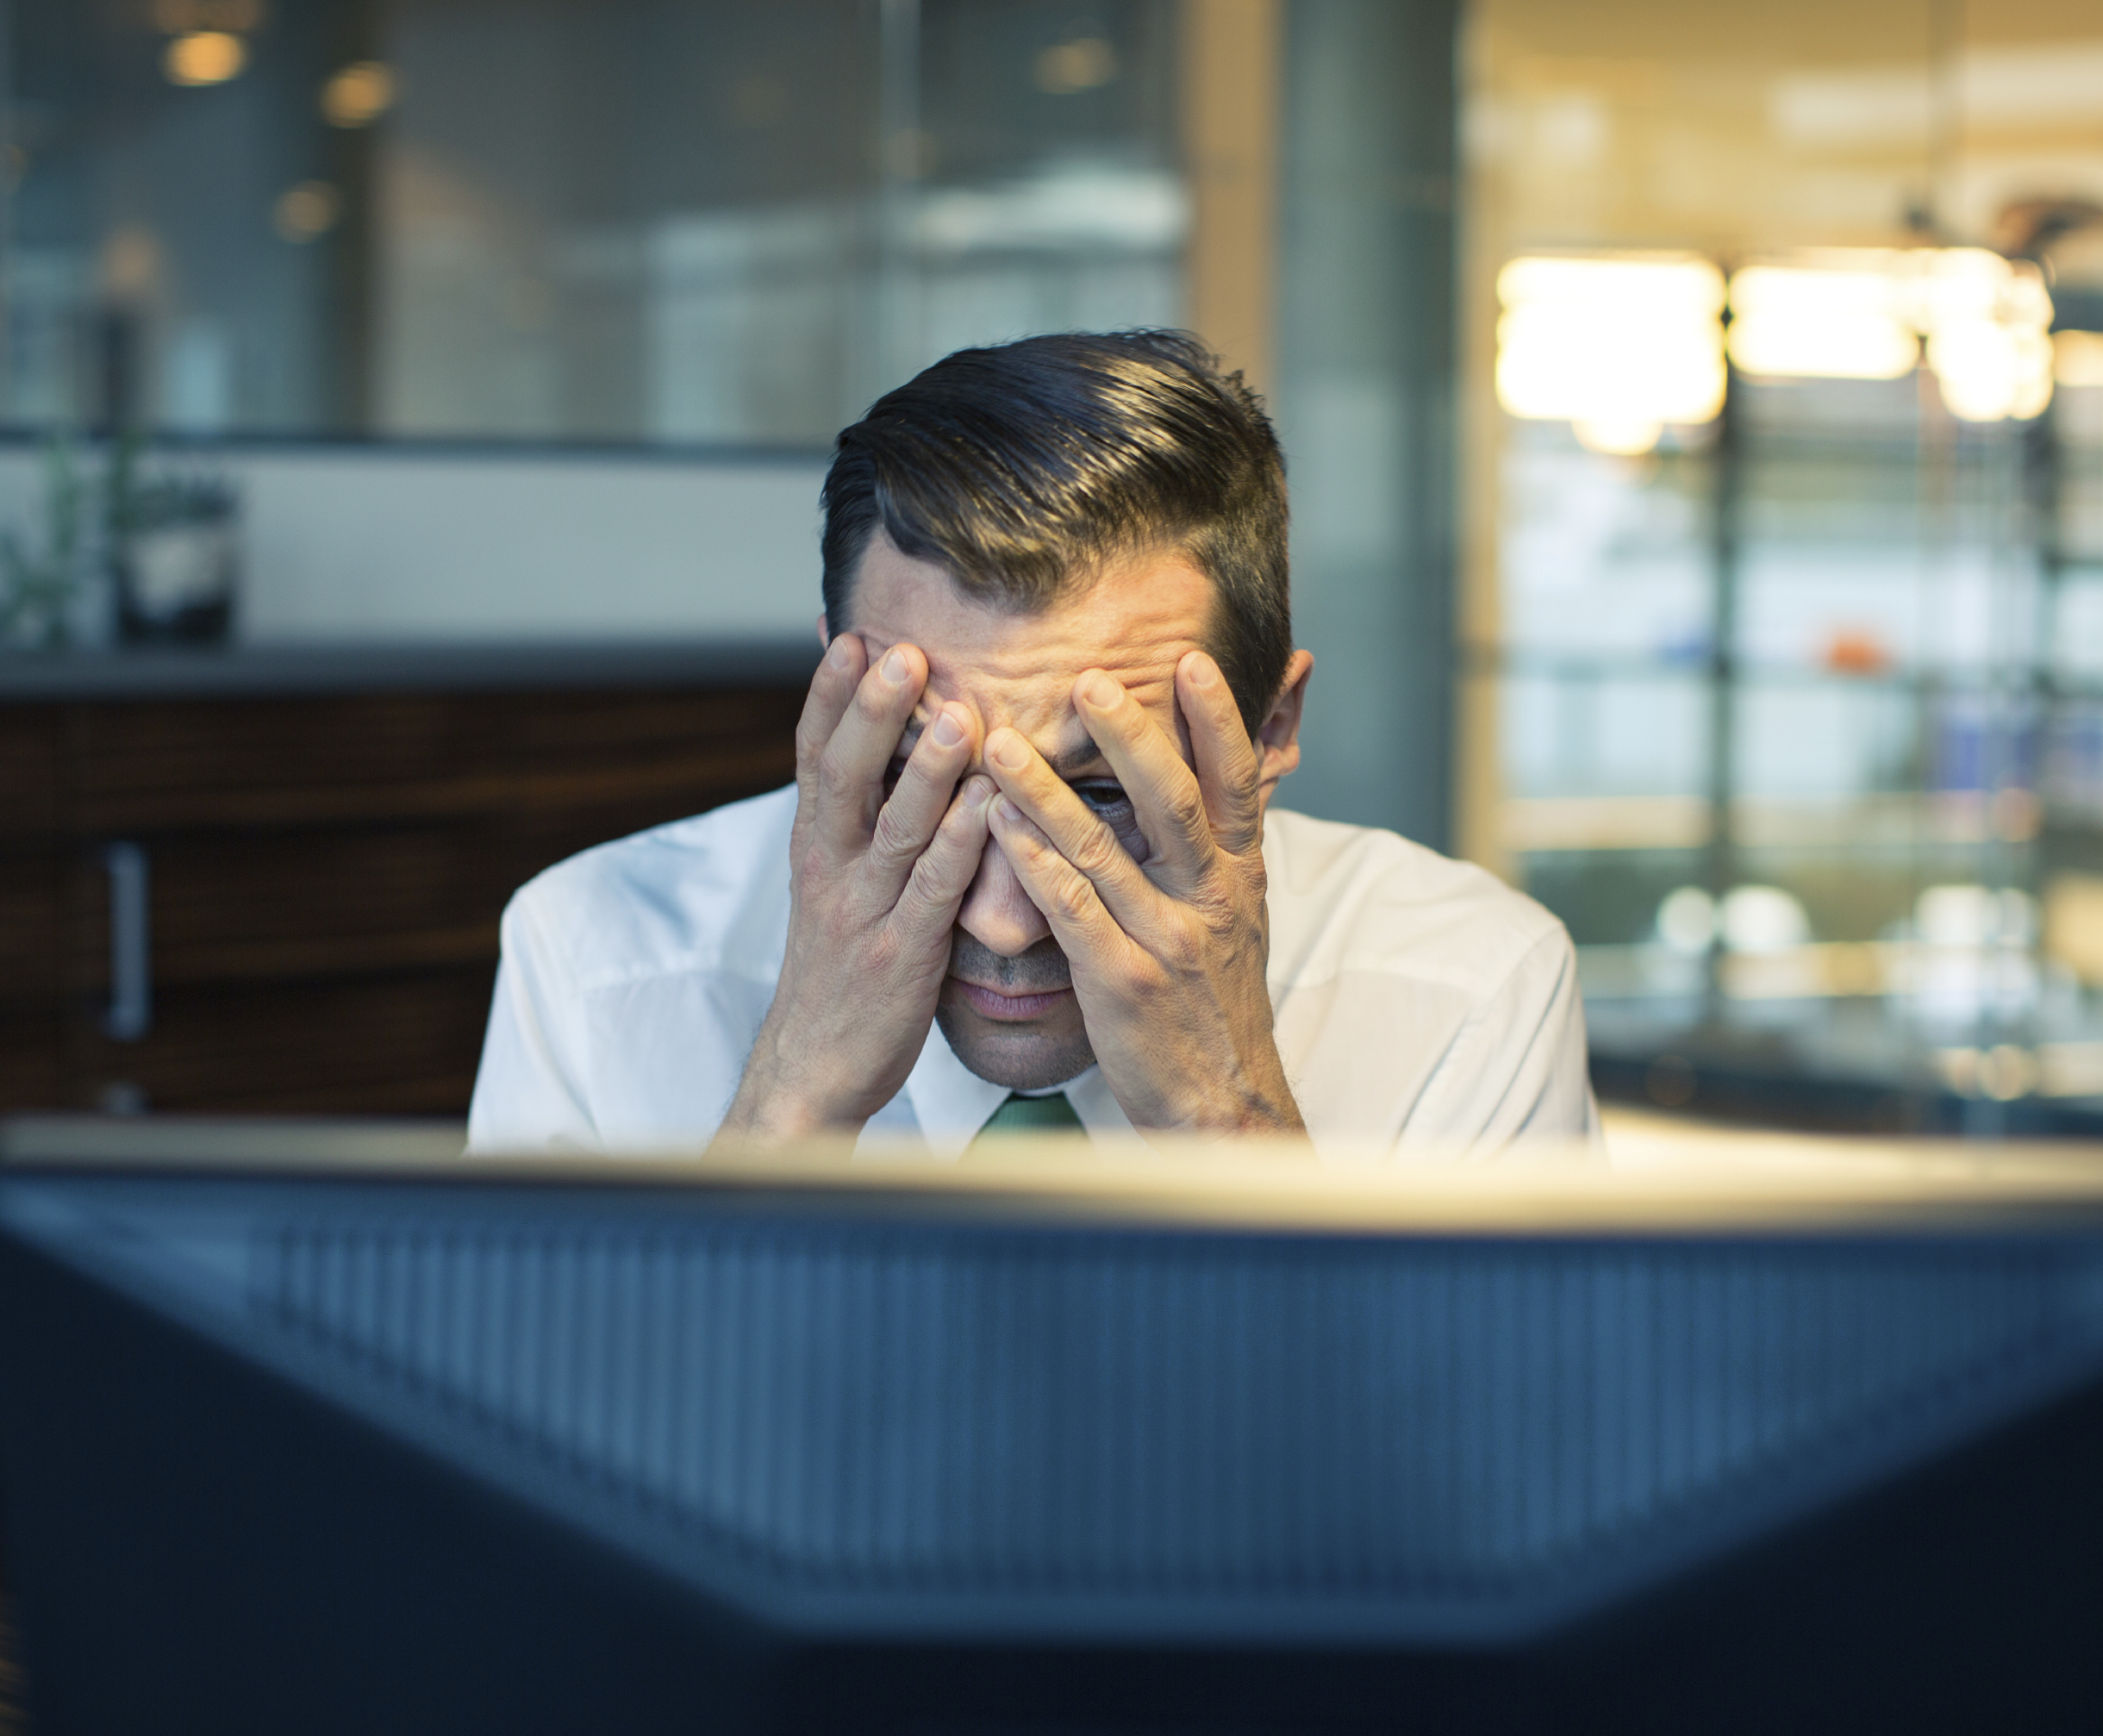 Five ways to cope when work gets hectic